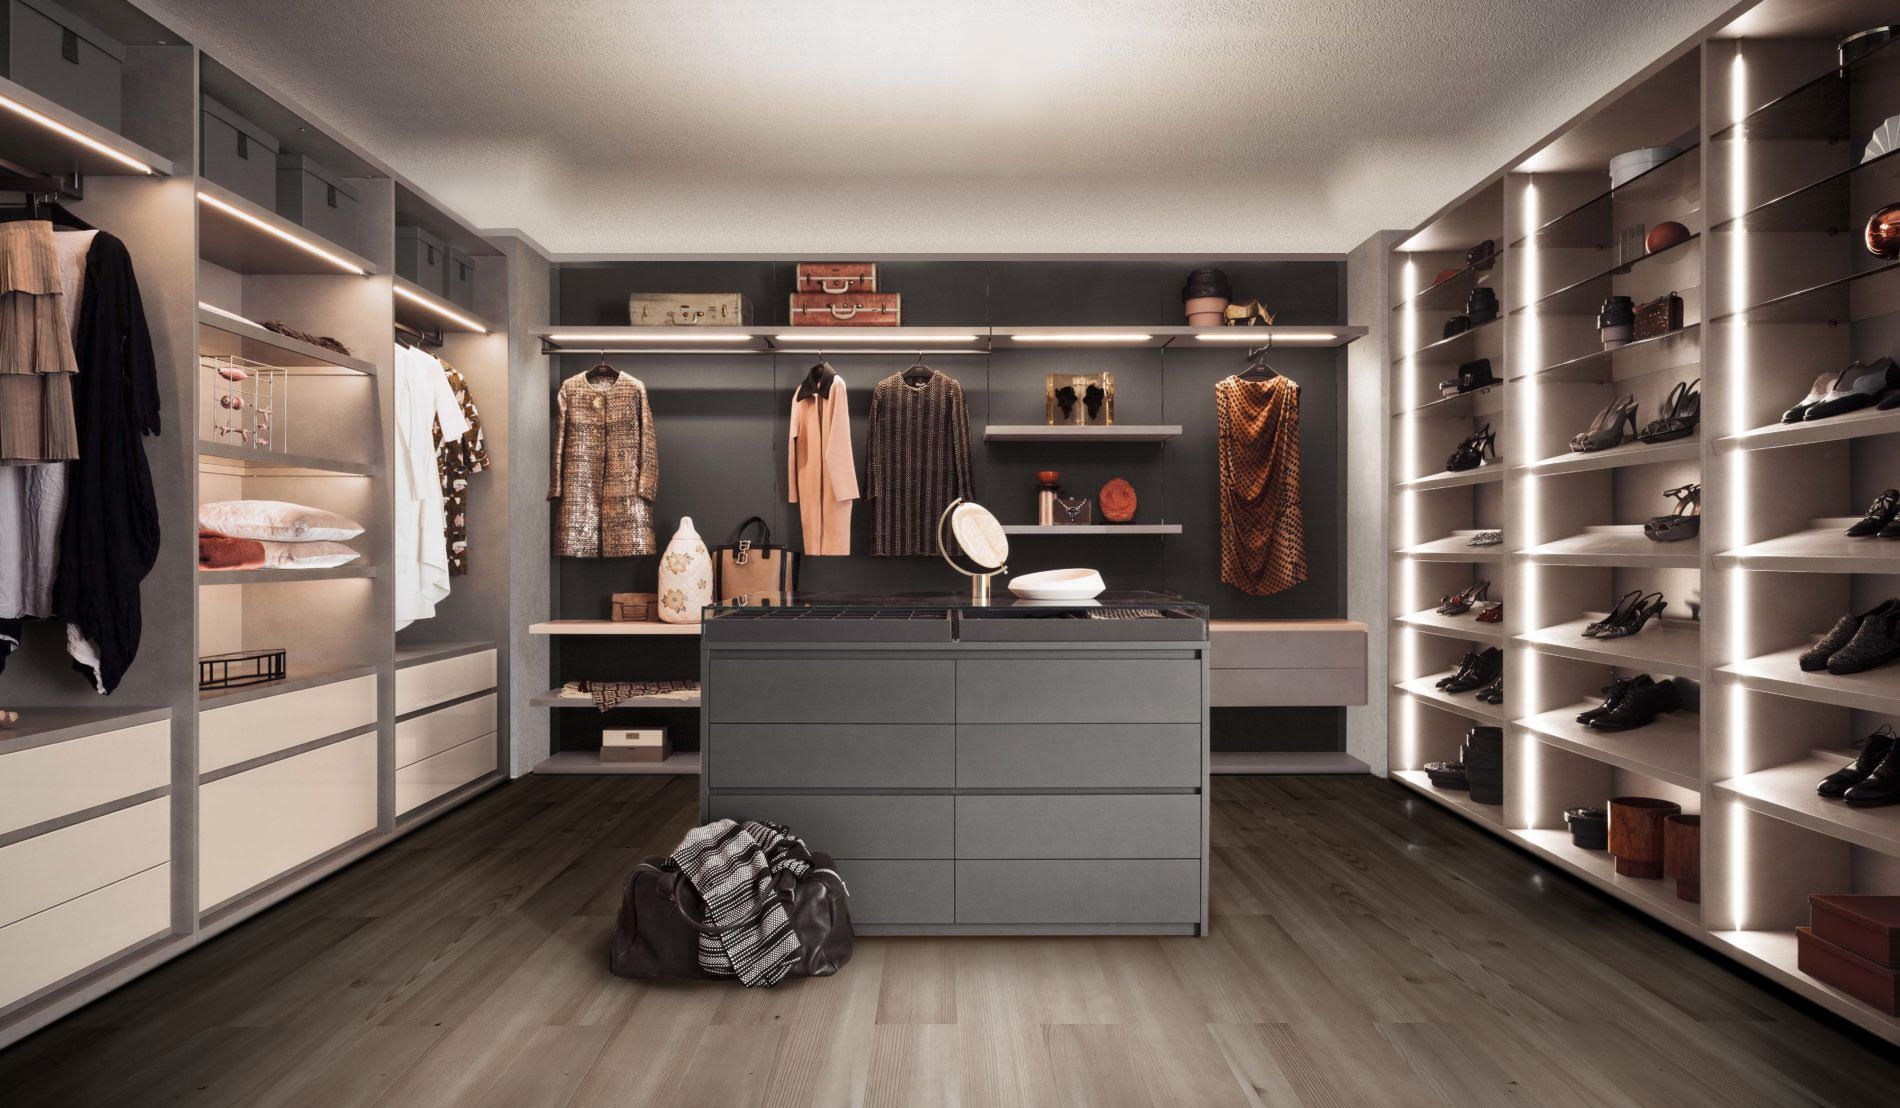 RM Living Cincinnati Contemporary Pianca Closet Interior Design